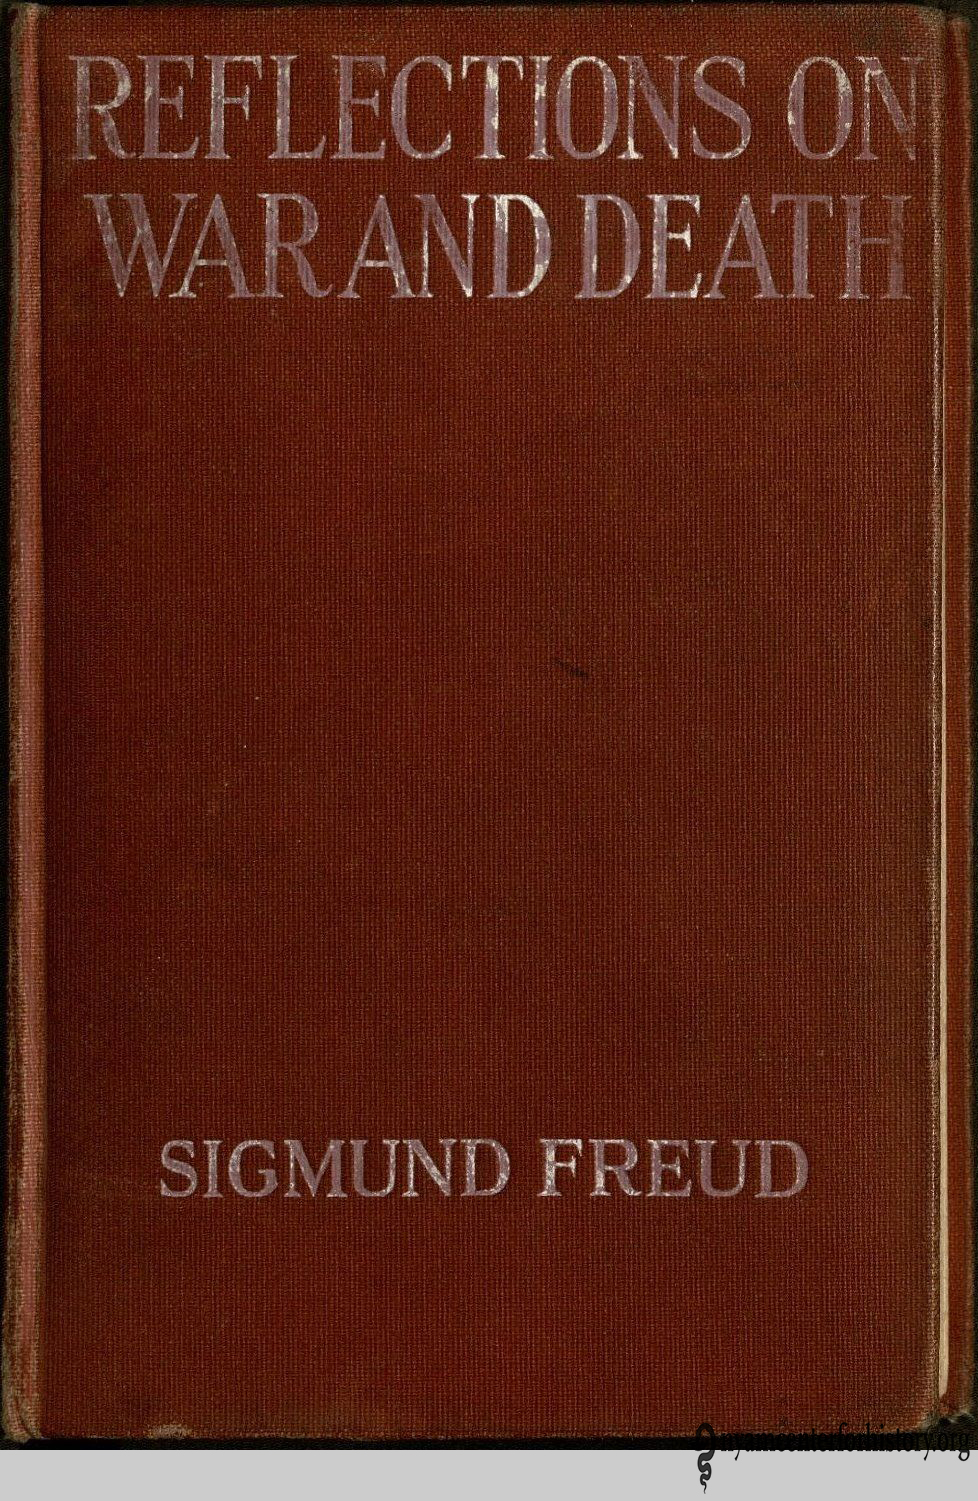 sigmund freud on war and death books health and history cover of freud s reflections on war and death translated by a a brill and alfred b